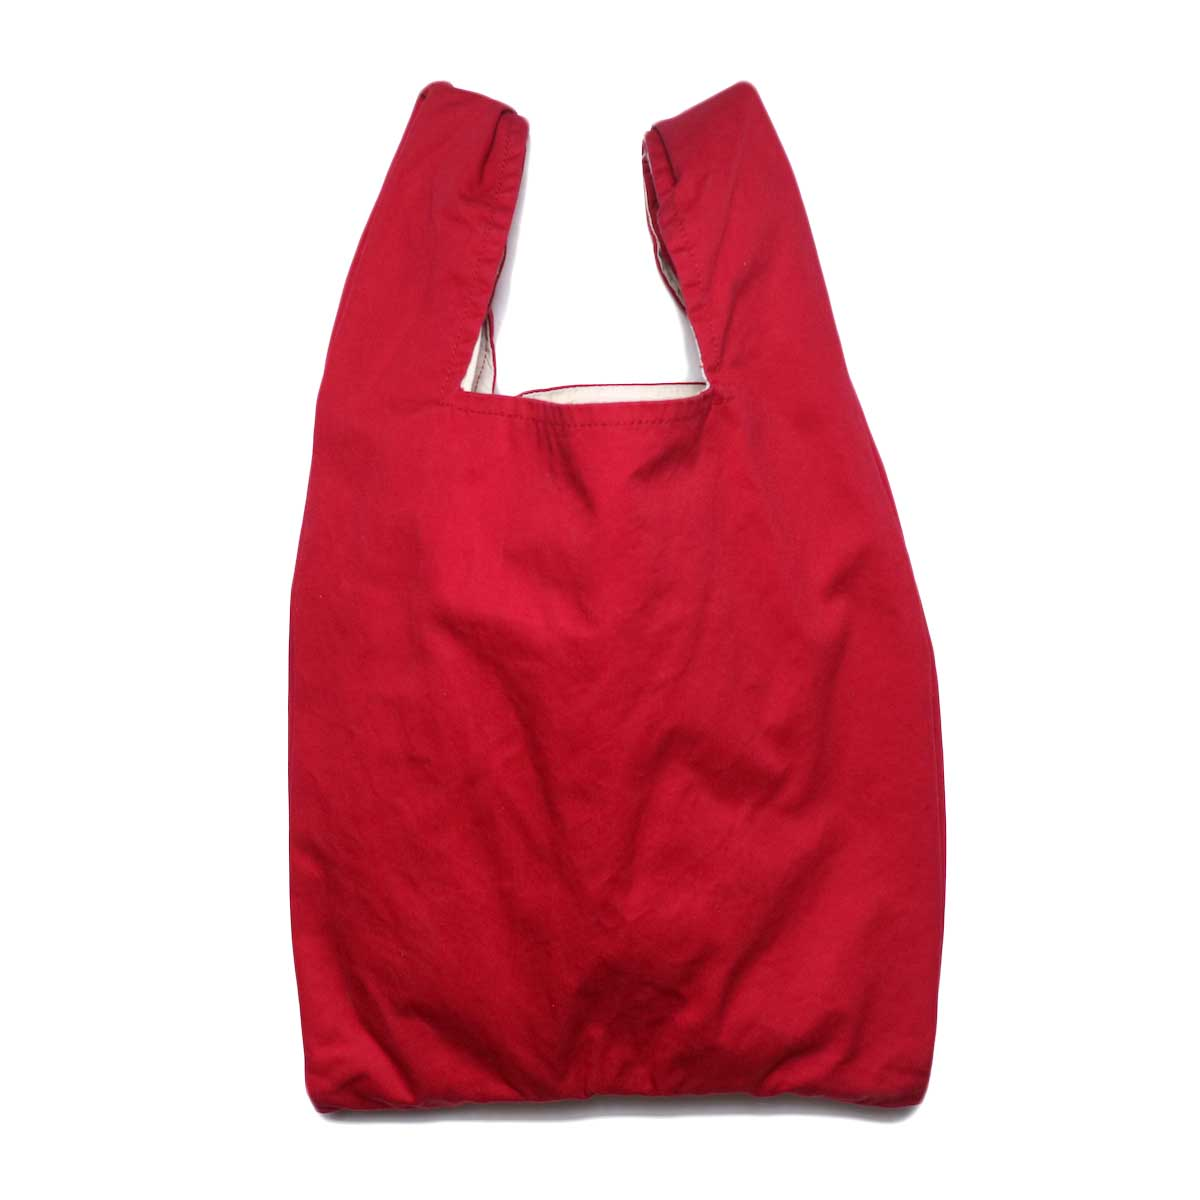 MASTER & Co. / ECO BAG SMALL (Red)